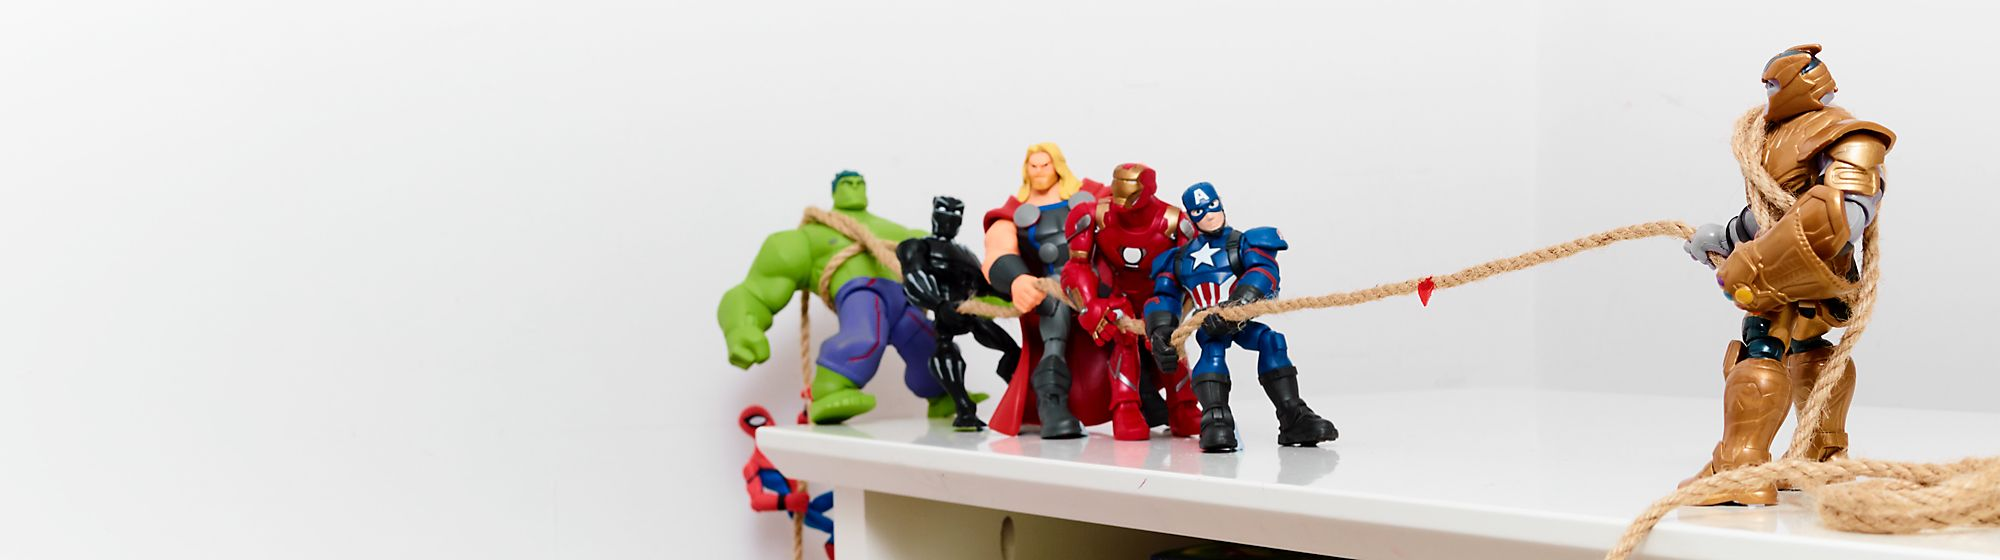 Action Figures It's time for an adventure! Explore our range of Disney, Pixar, Star Wars and Marvel action figures